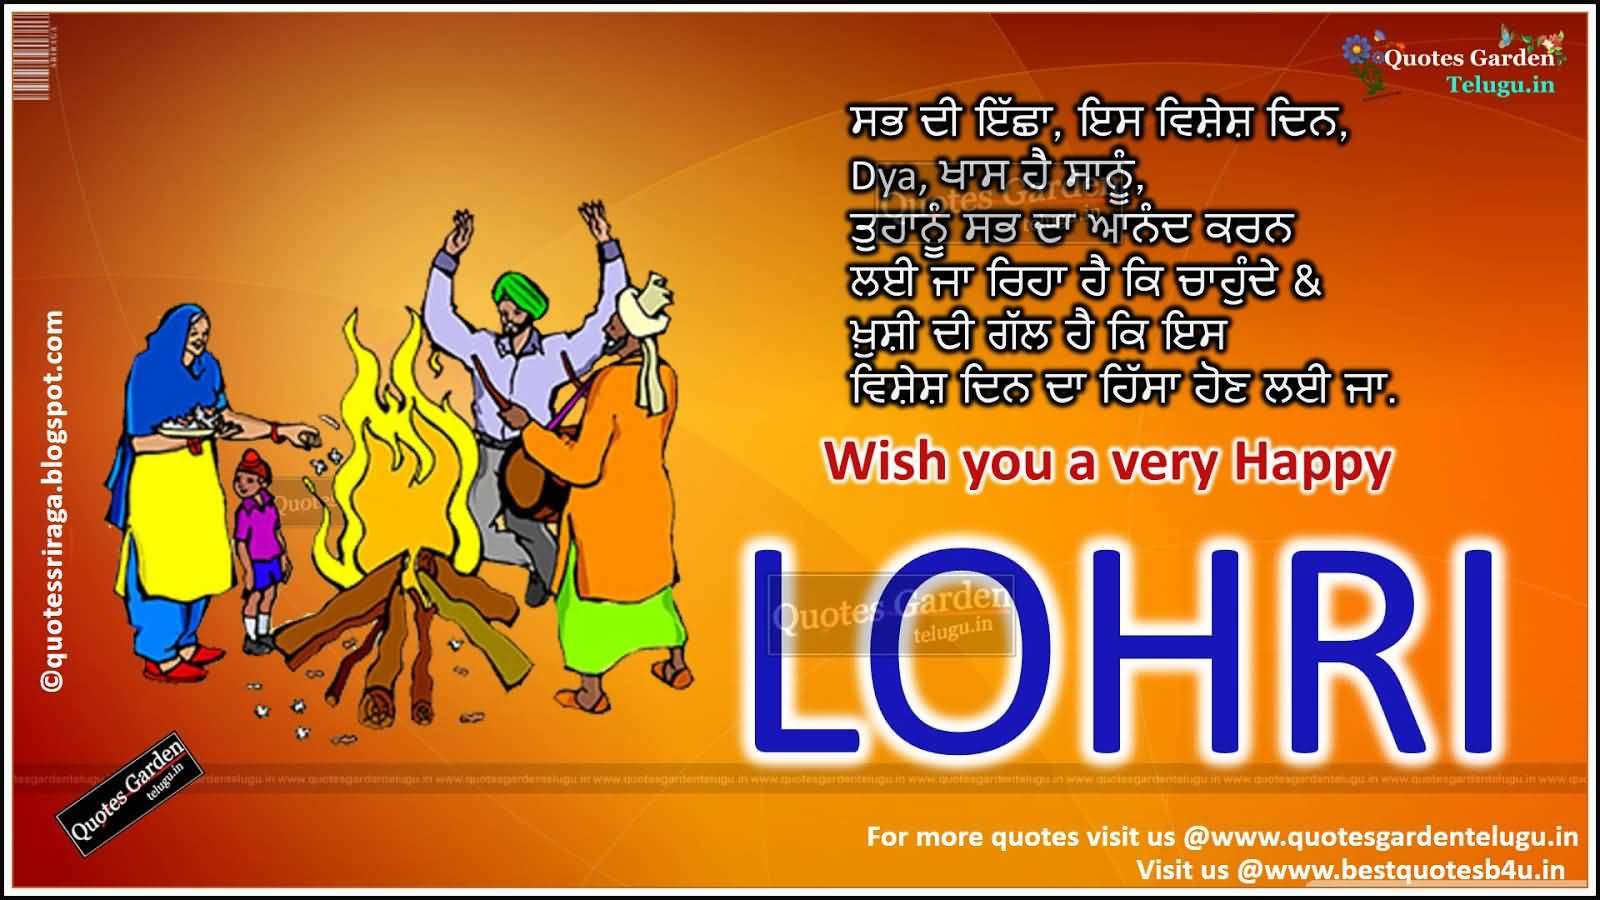 8-Happy Lohri Wishes